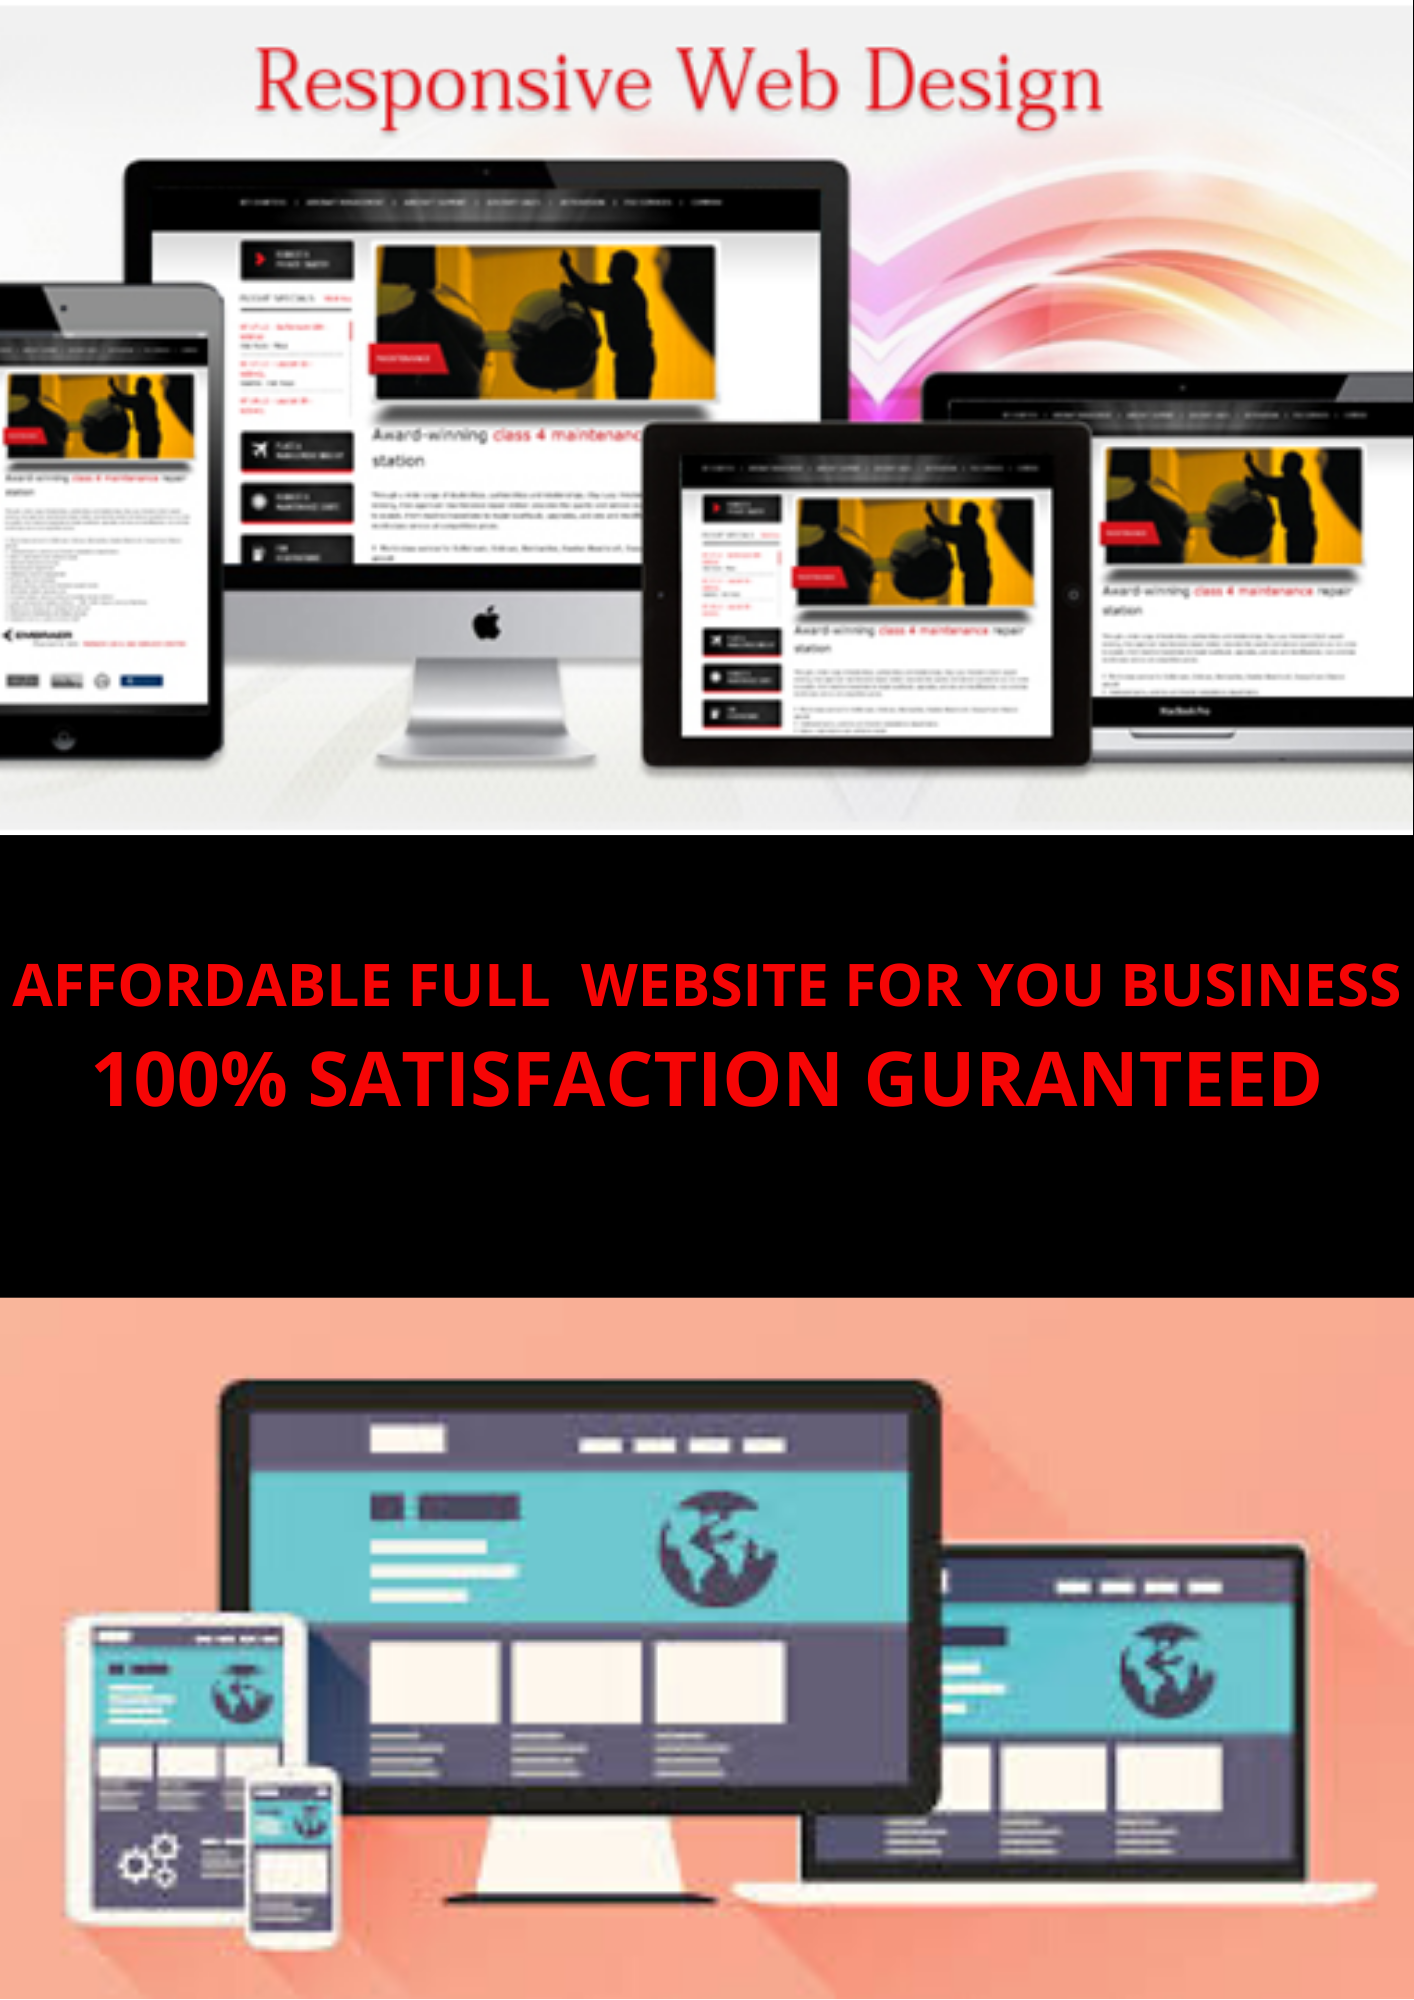 I will create a website that attracts more customers for business